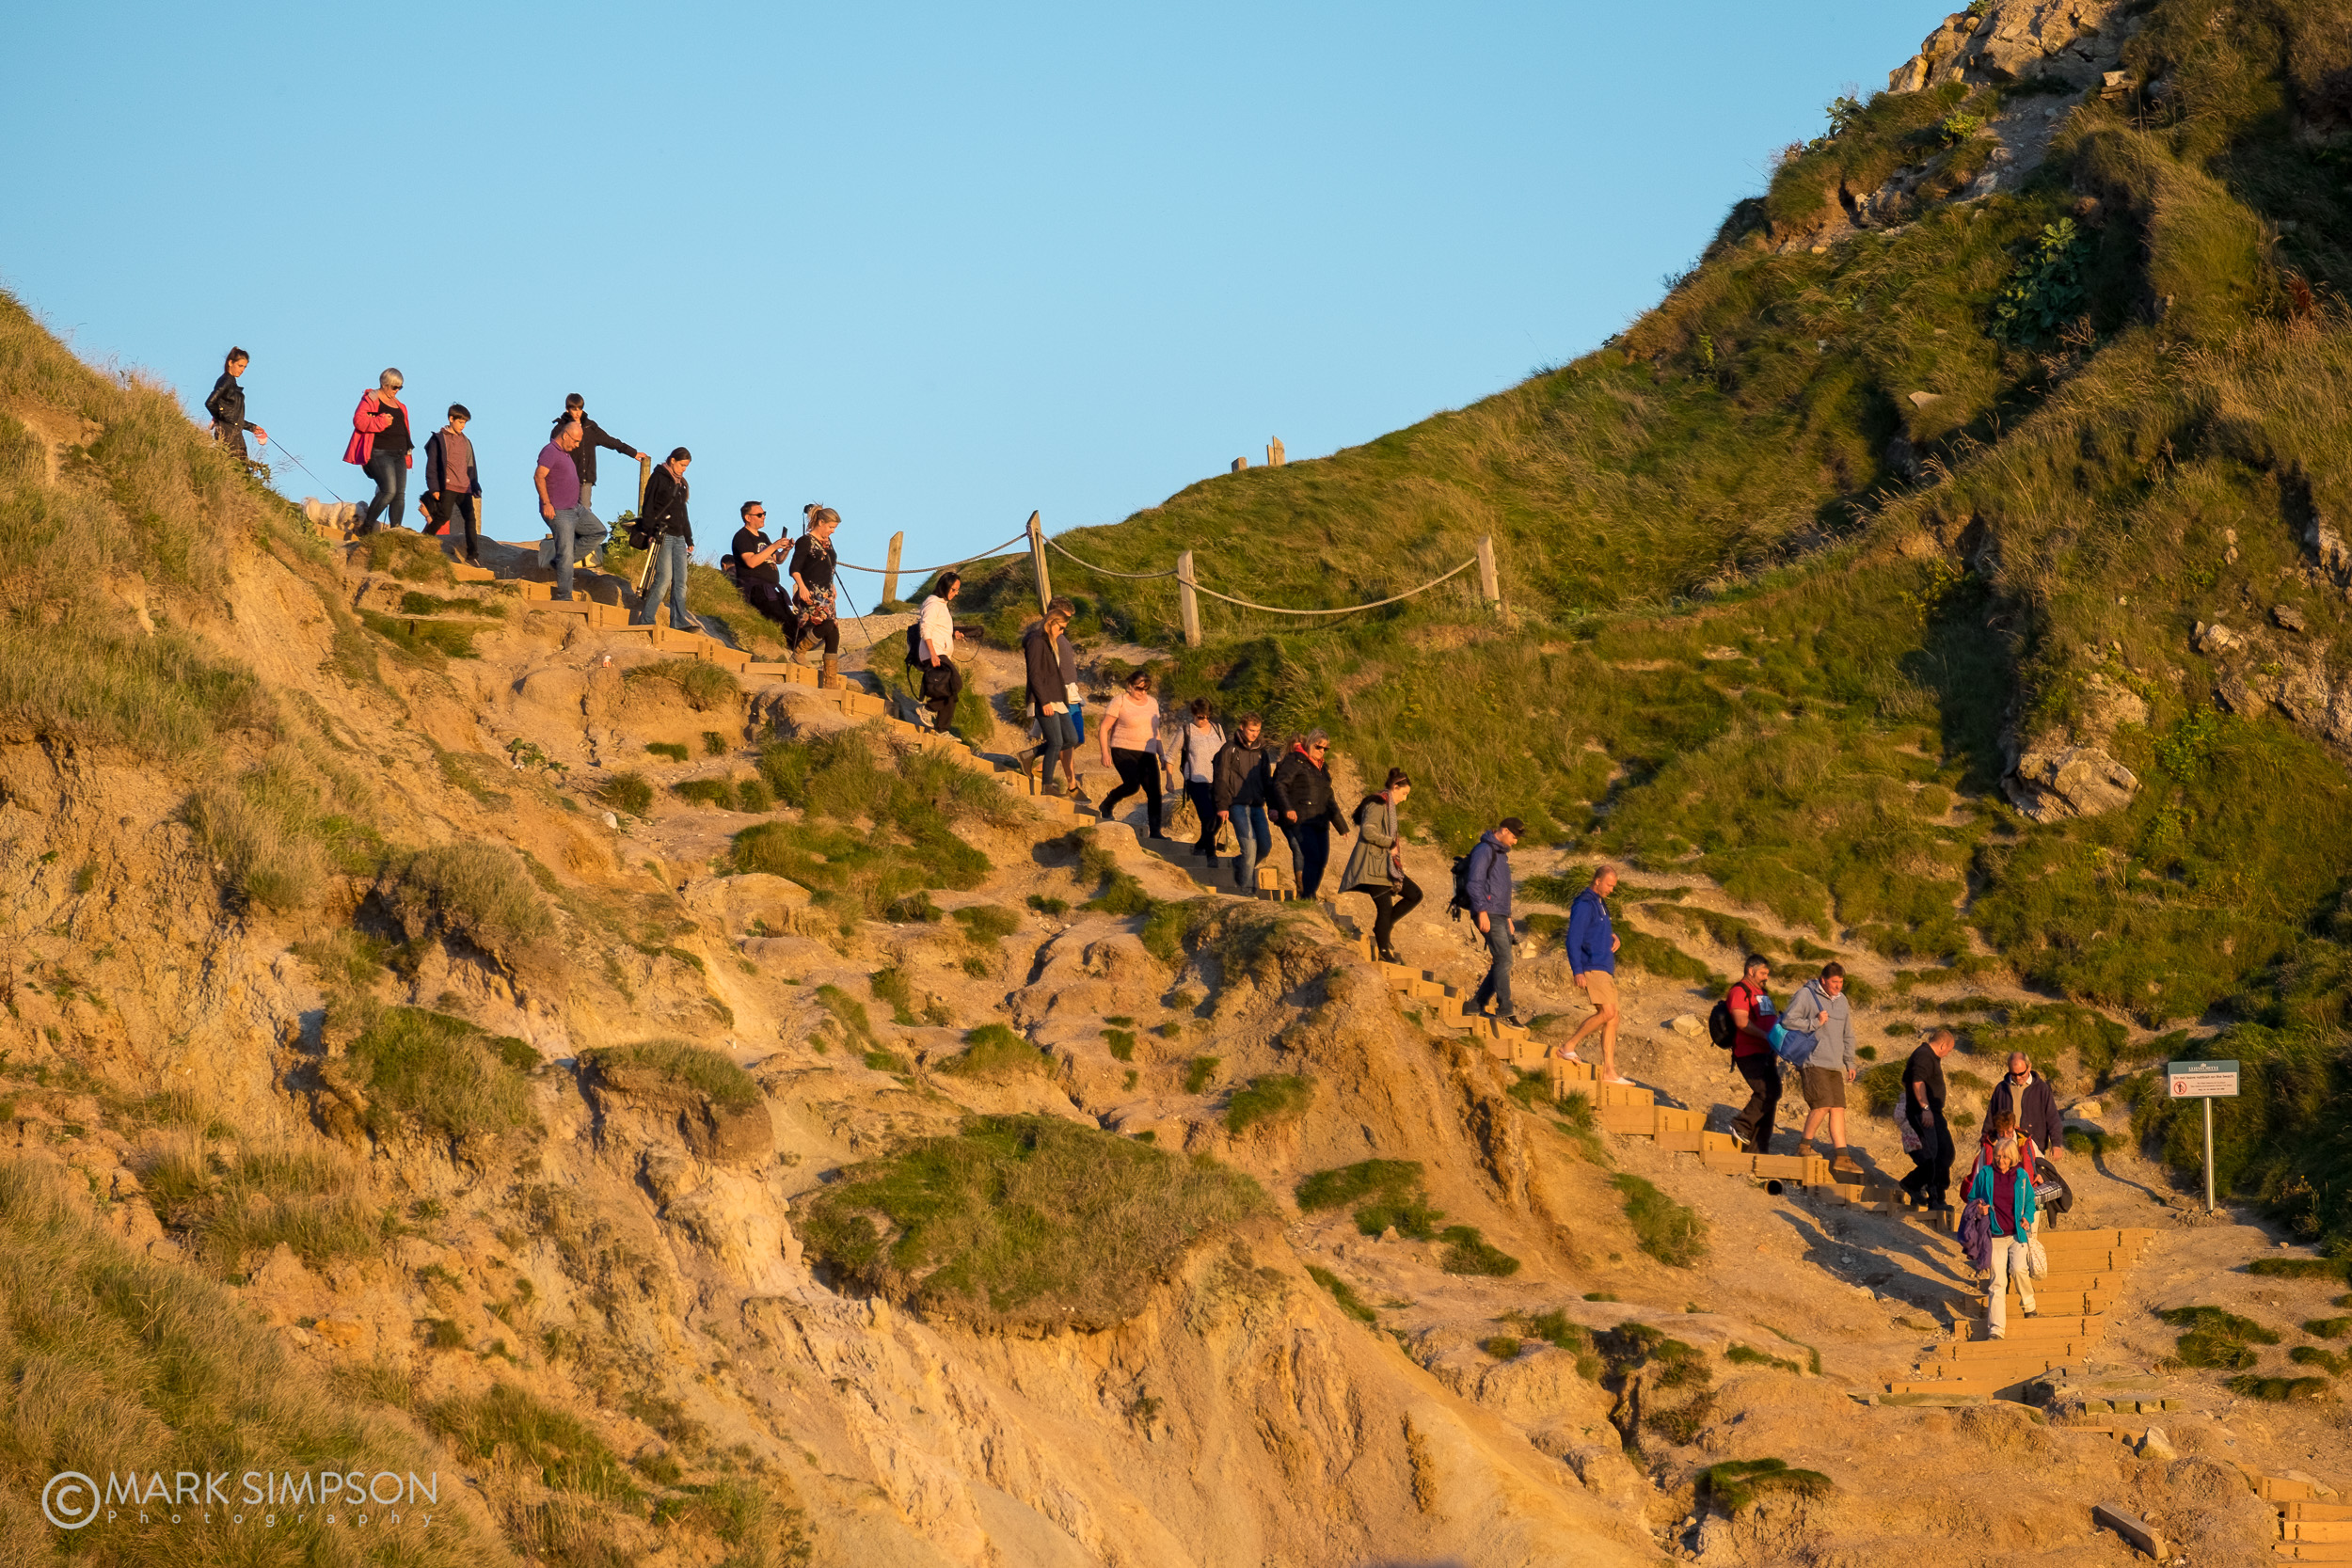 A busy evening at Durdle Door, Dorset (Fujifilm X-T1, Fujinon XF 55-200mm F3.5-4.8 R LM OIS at 135mm, 1/640 sec f4.4, ISO200)